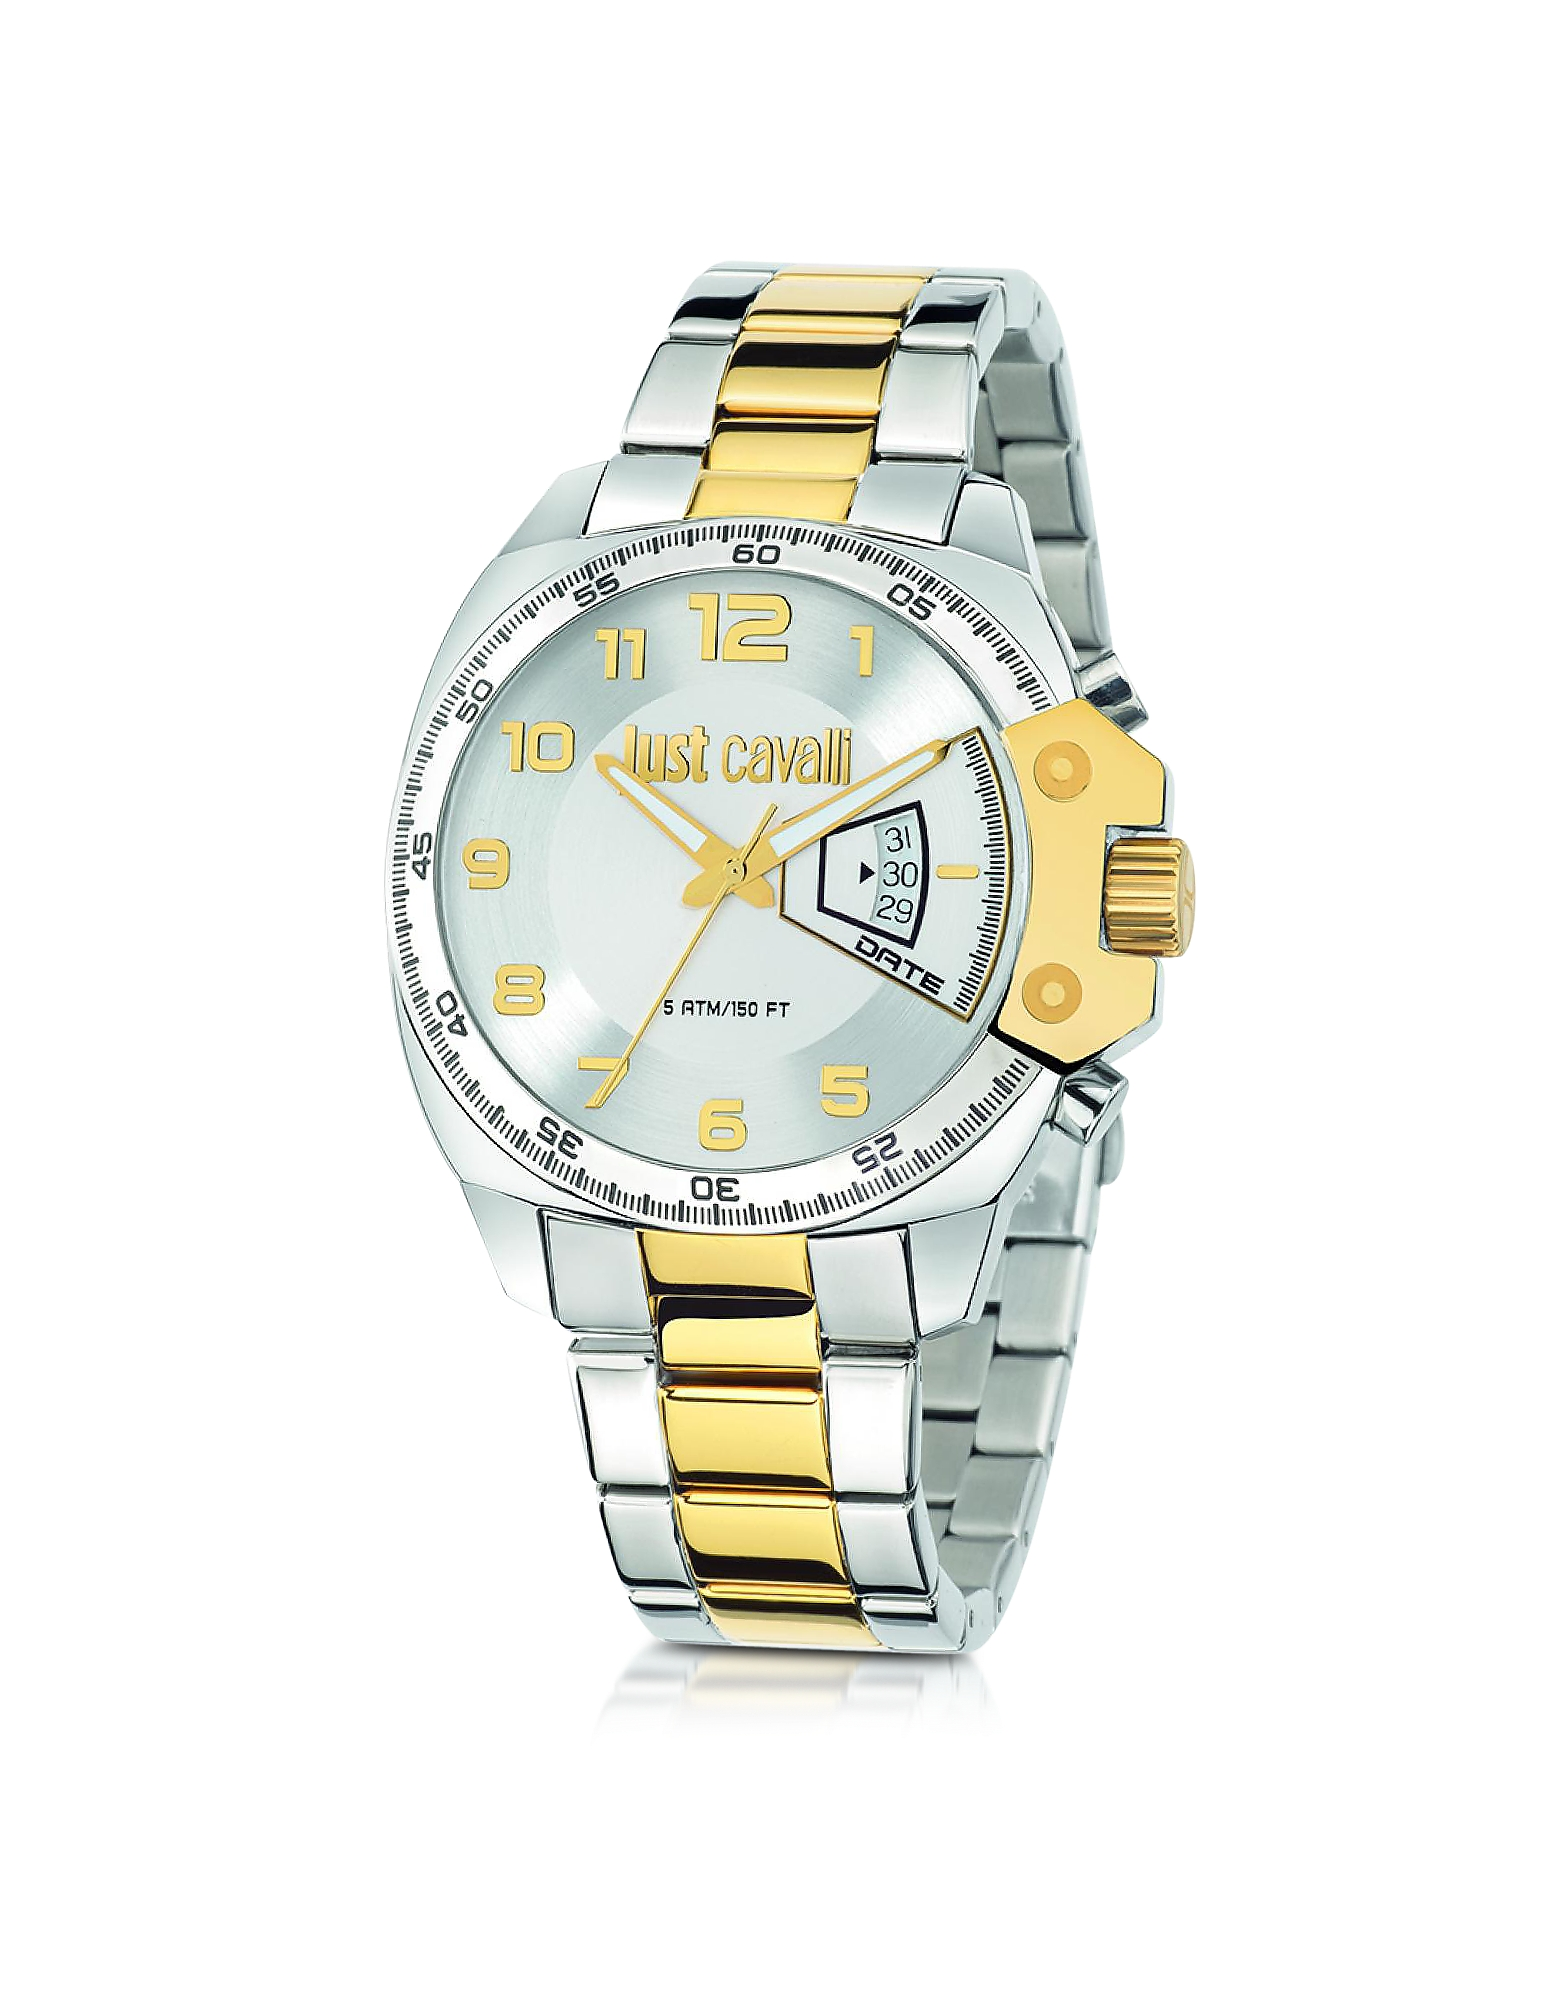 Just Cavalli Men's Watches, Just Escape Two Tone Stainless Steel Men's Watch